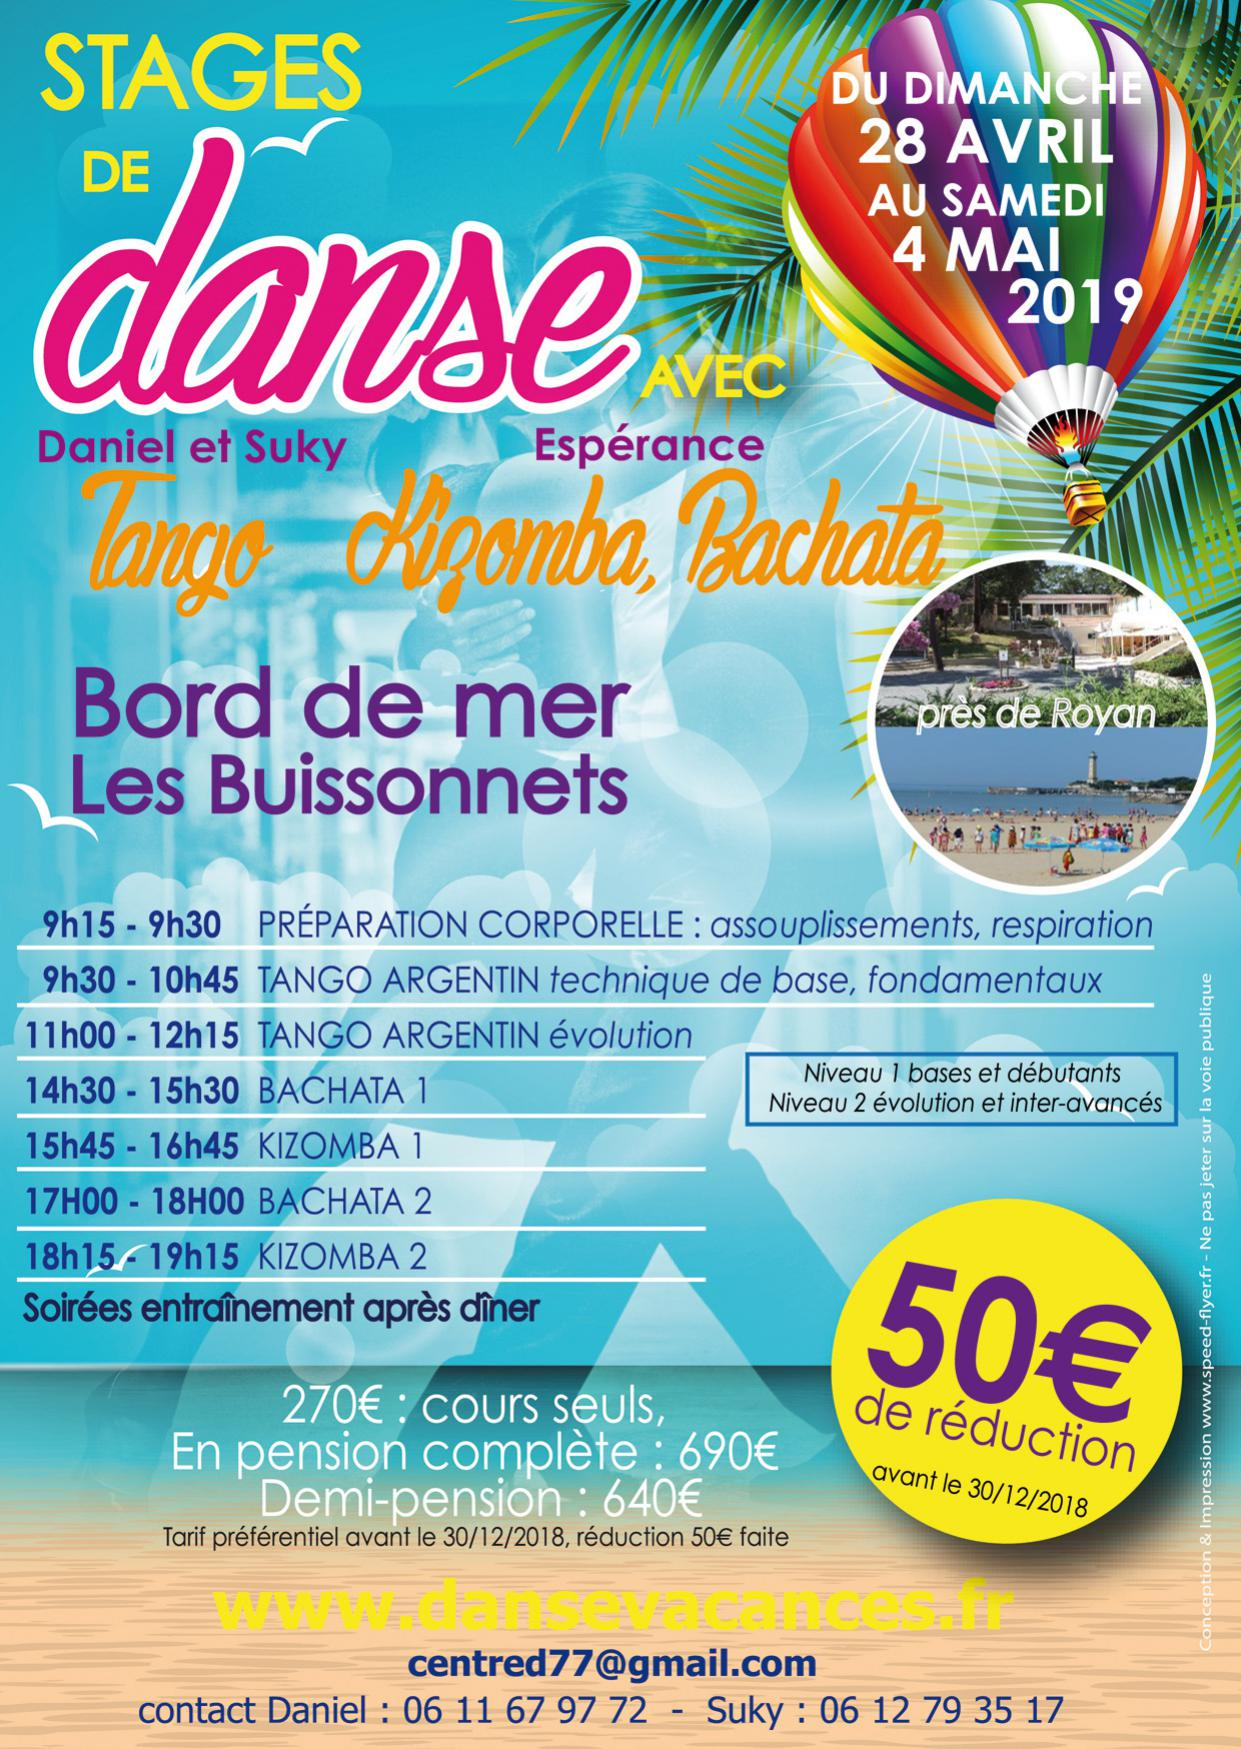 Flyer Les Buissonnets.jpg